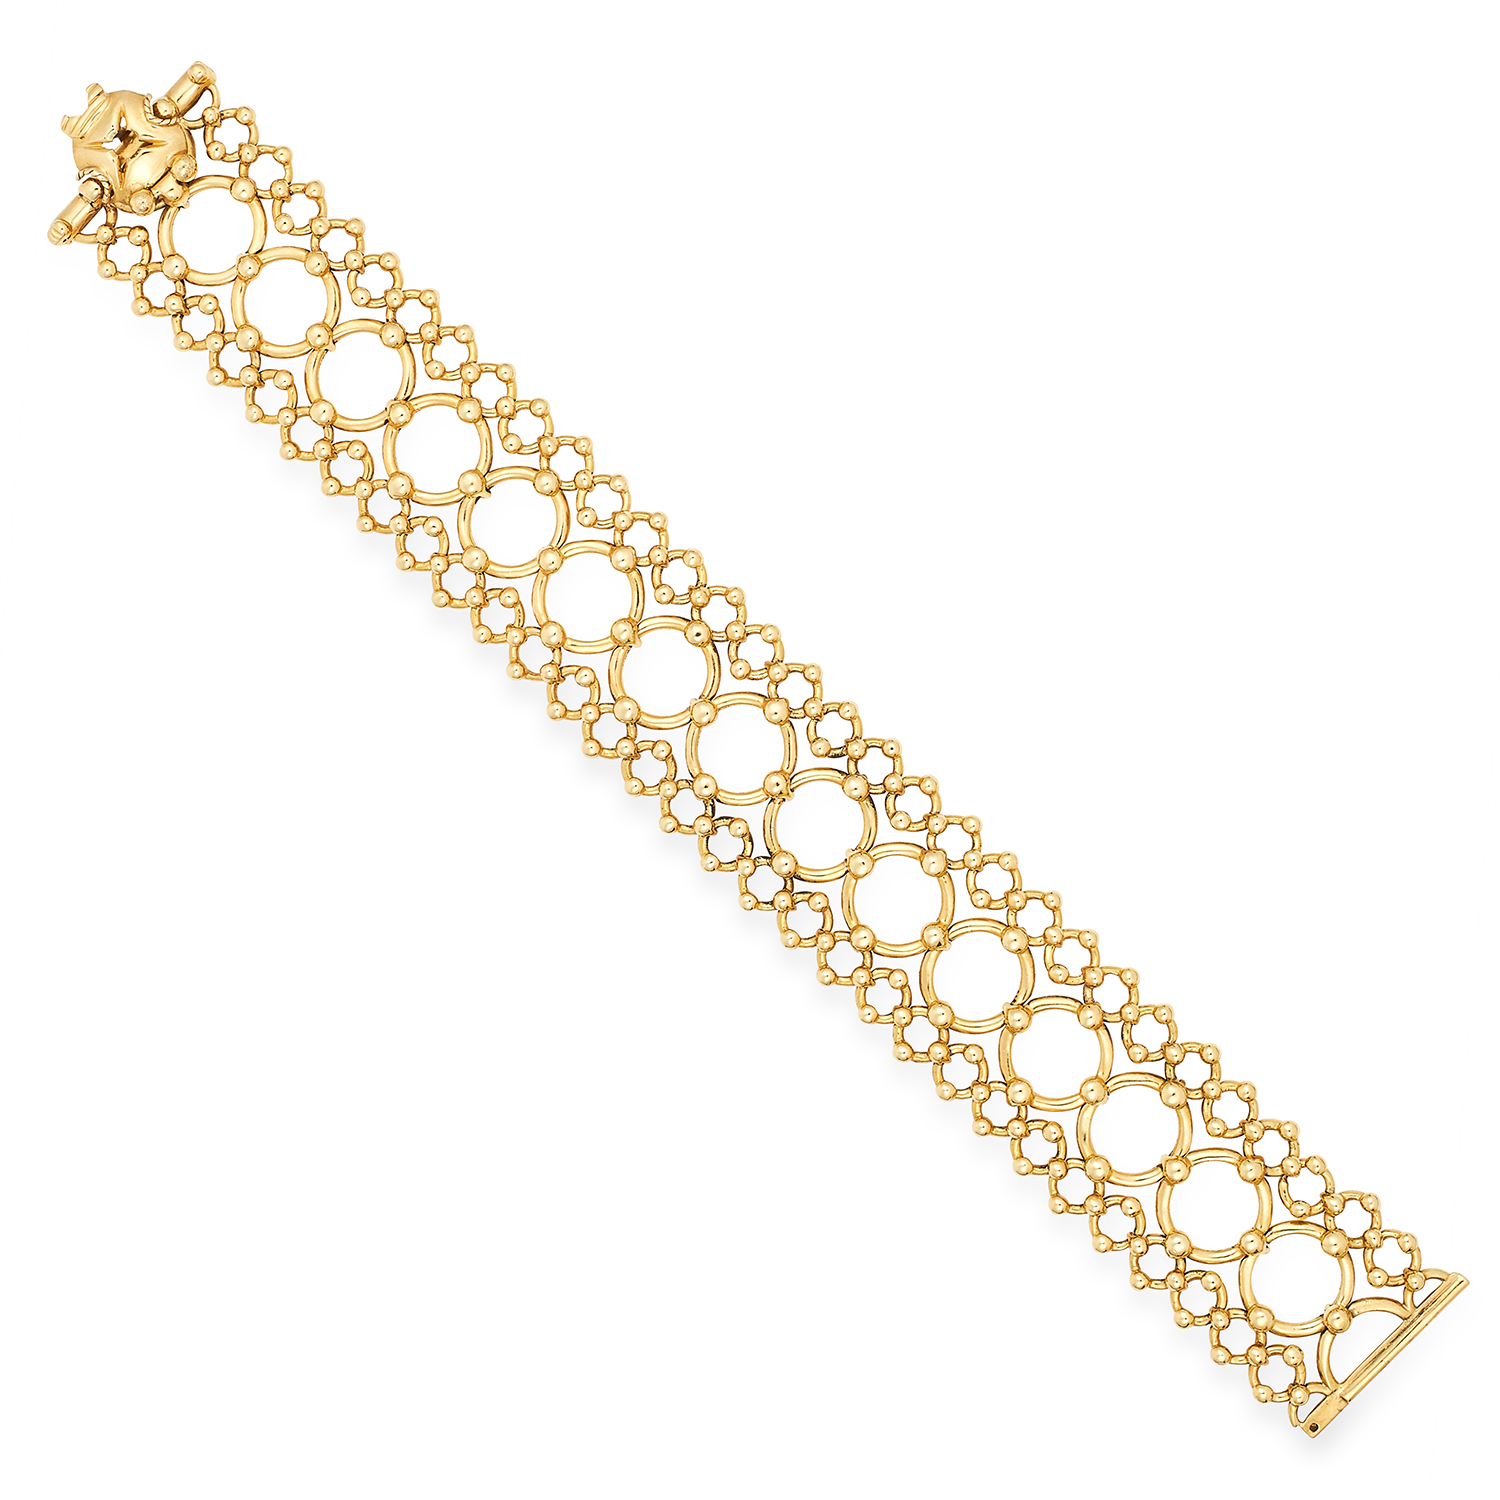 Los 31 - FANCY LINK GOLD BRACELET, TIFFANY & CO comprising of circular links accented by gold gold beads,